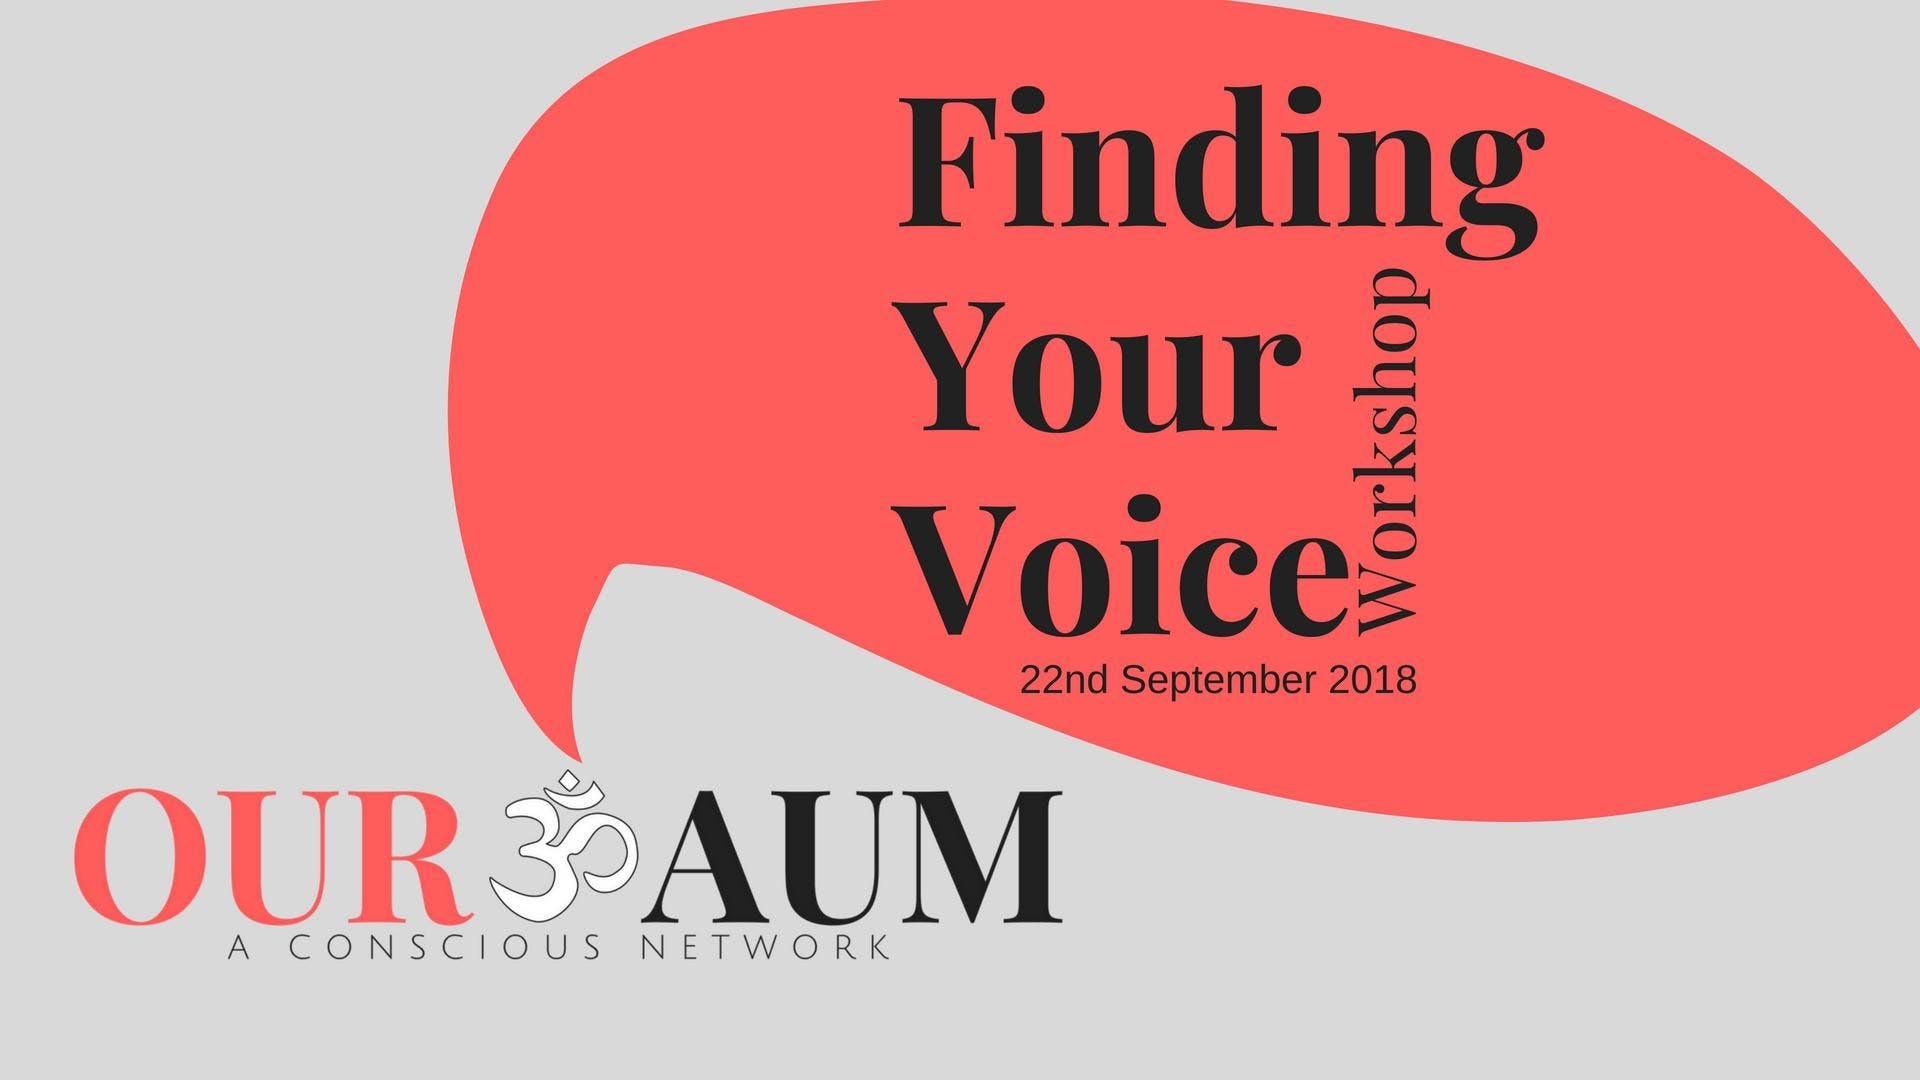 Finding Your Voice Workshop